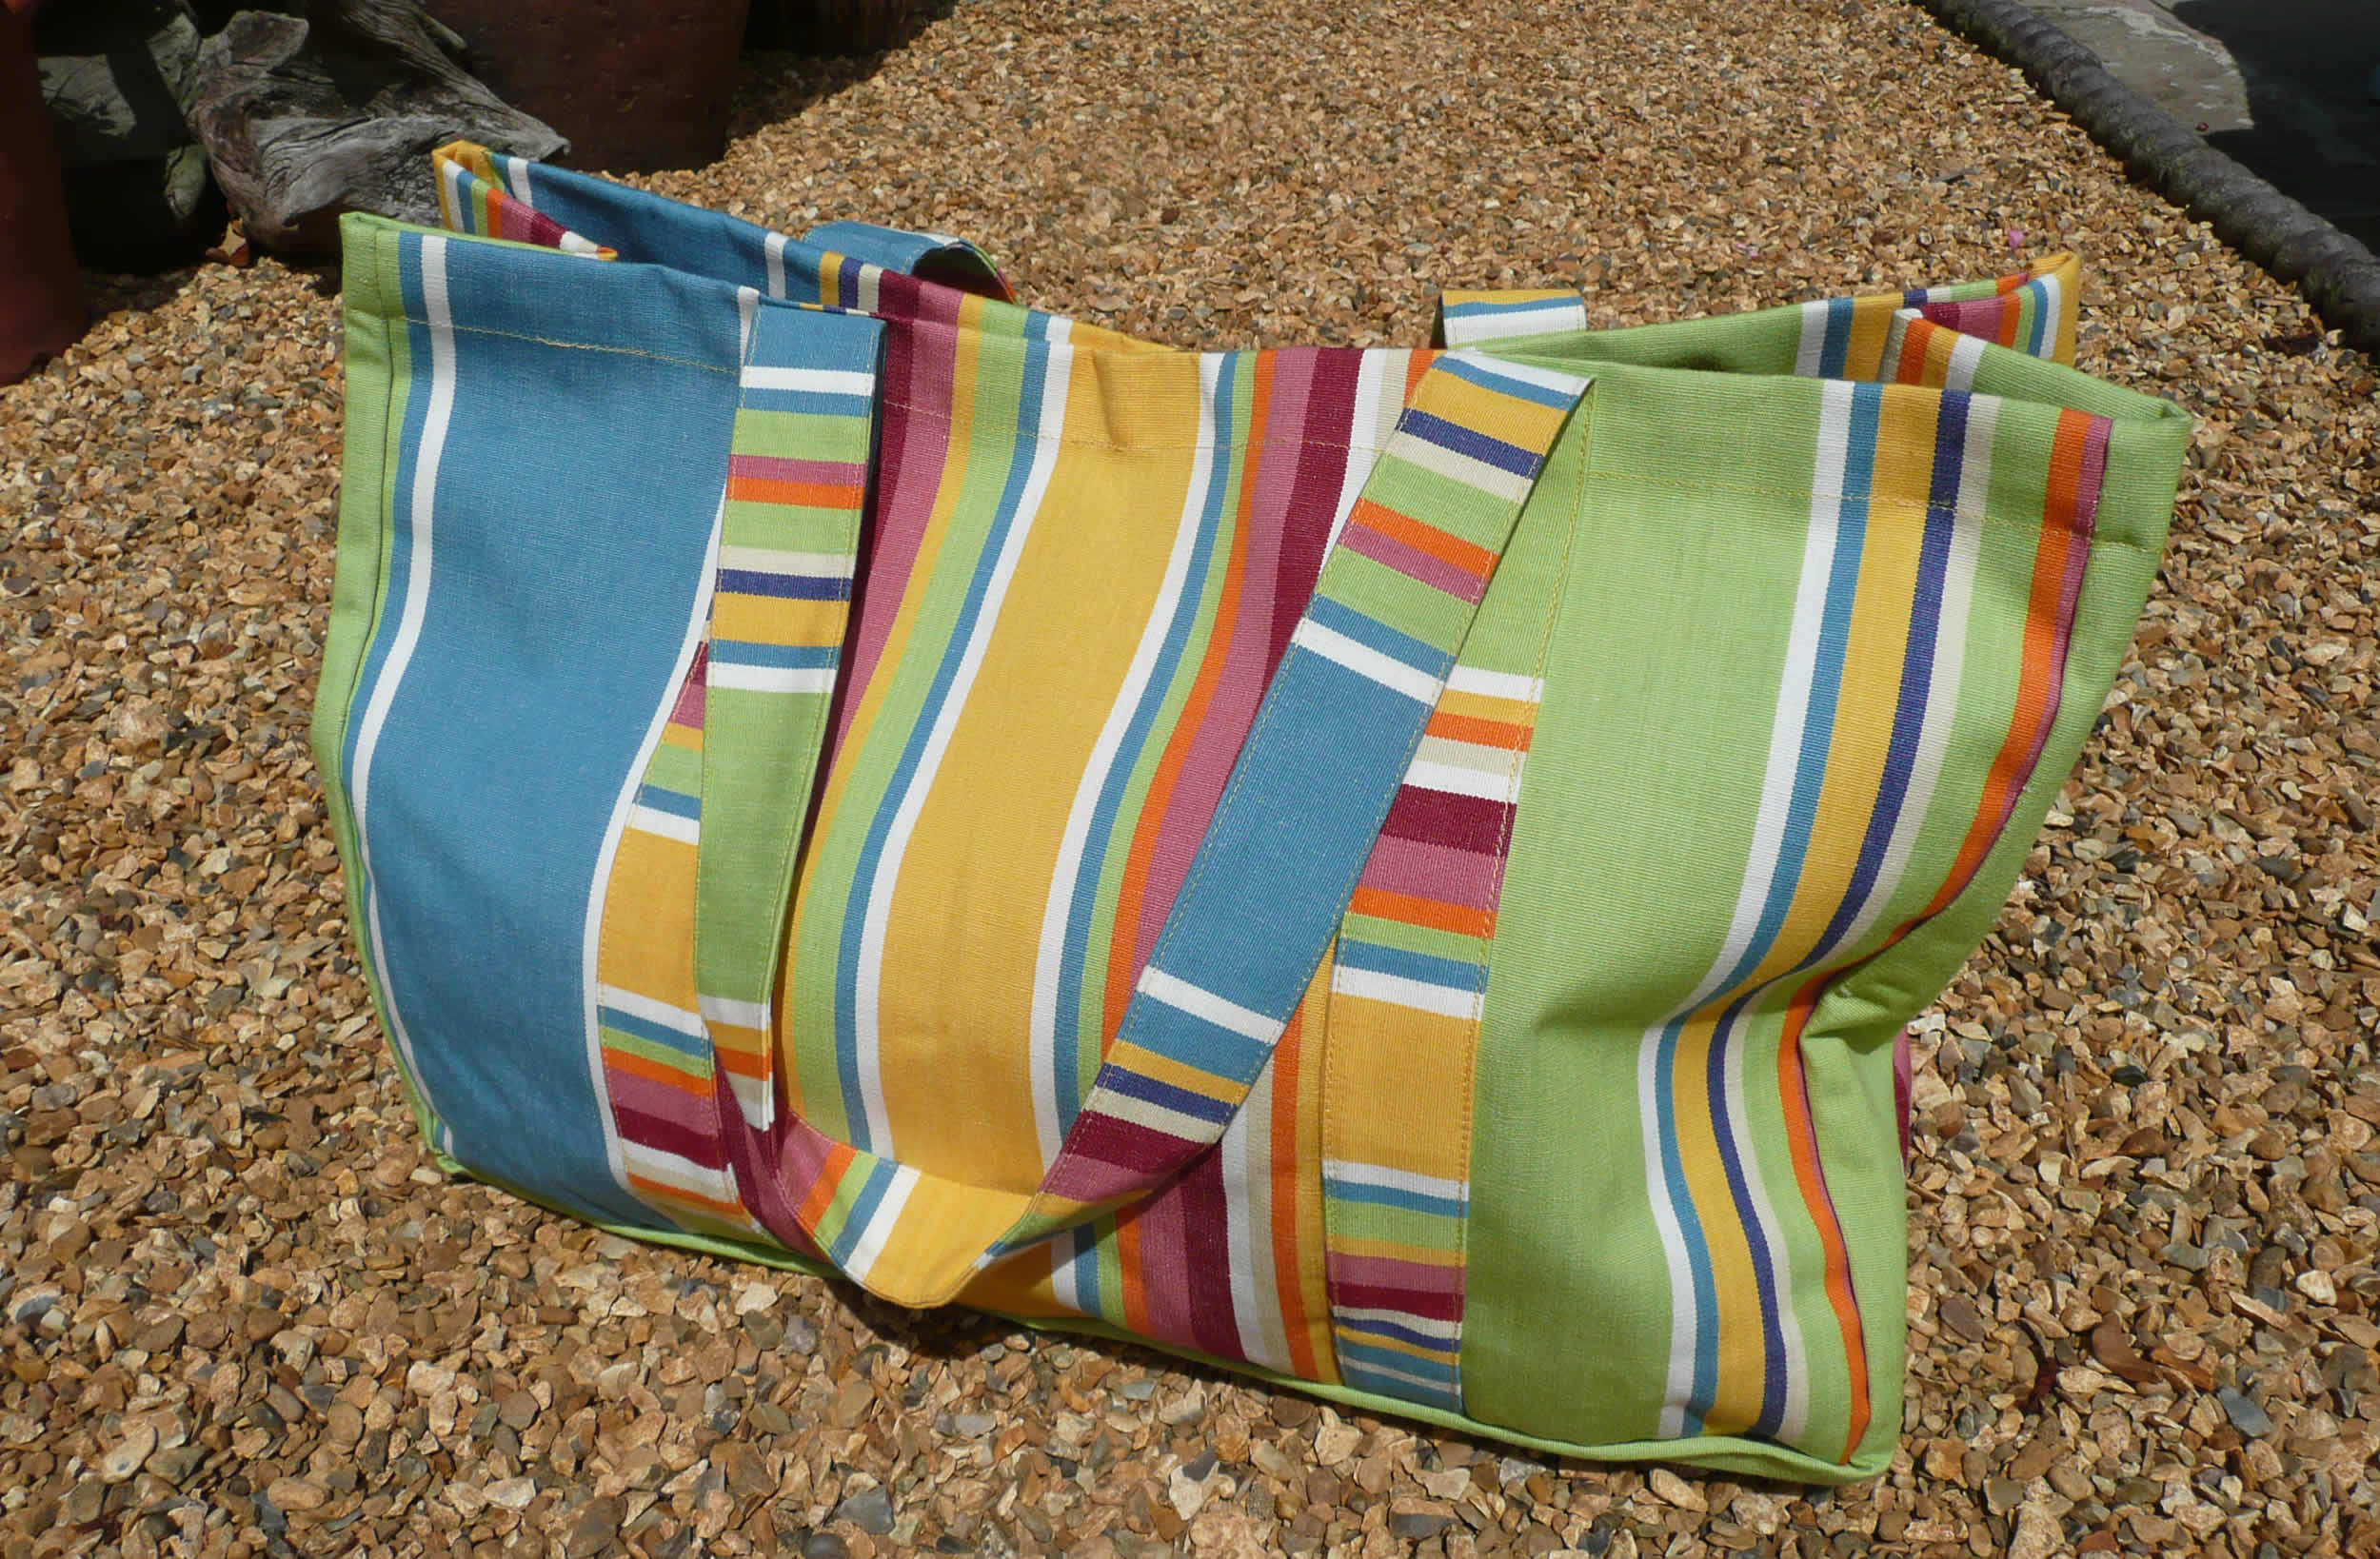 Stylish Yellow Extra Large Beach Bags With Colourful Stripes Of Pale Green And Sky Blue A Waterproof Zipped Compartment